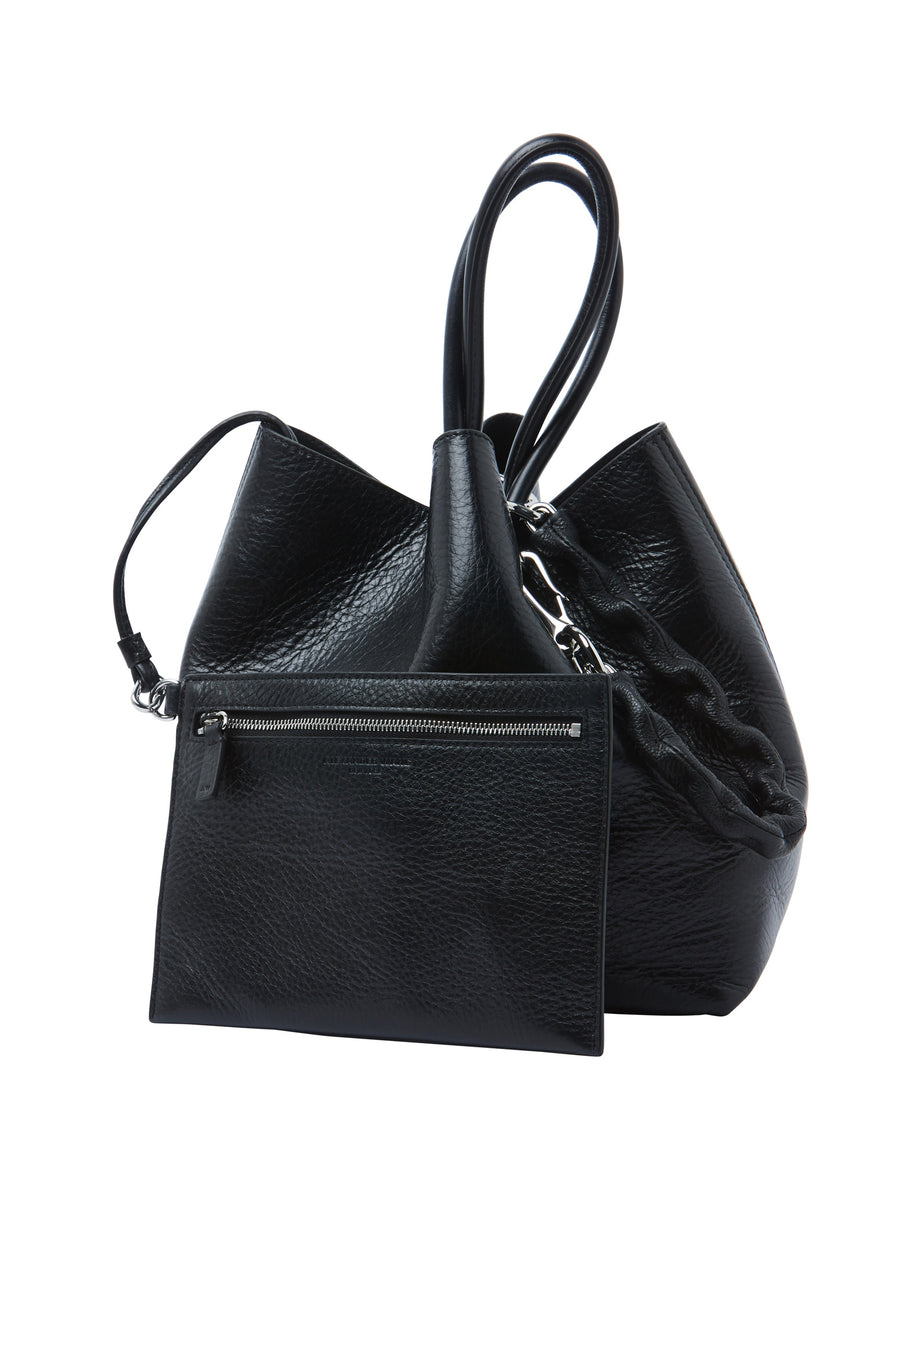 ROXY SOFT SMALL TOTE